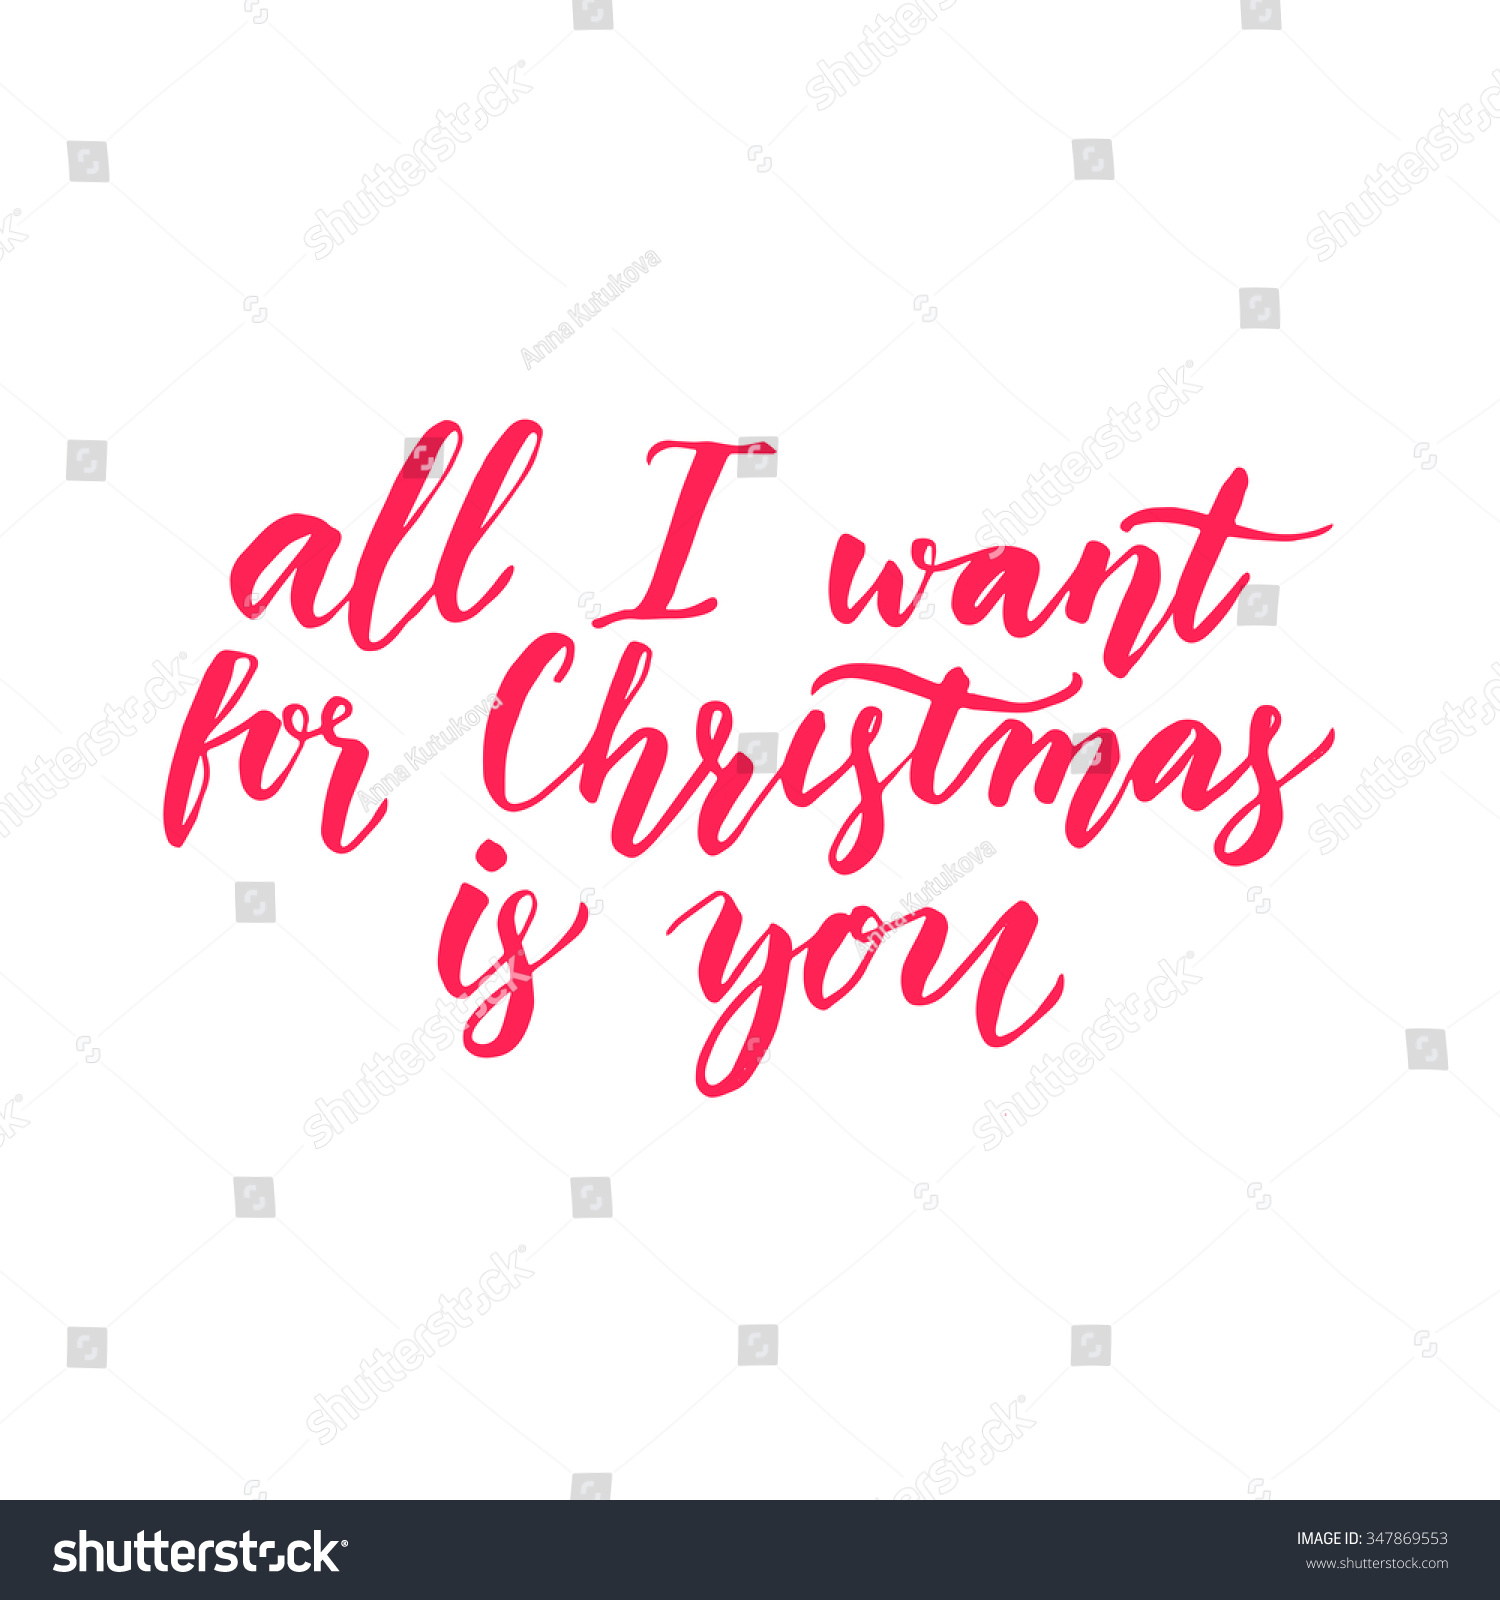 All Want Christmas You Inspirational Quote Stock Vector (Royalty ...